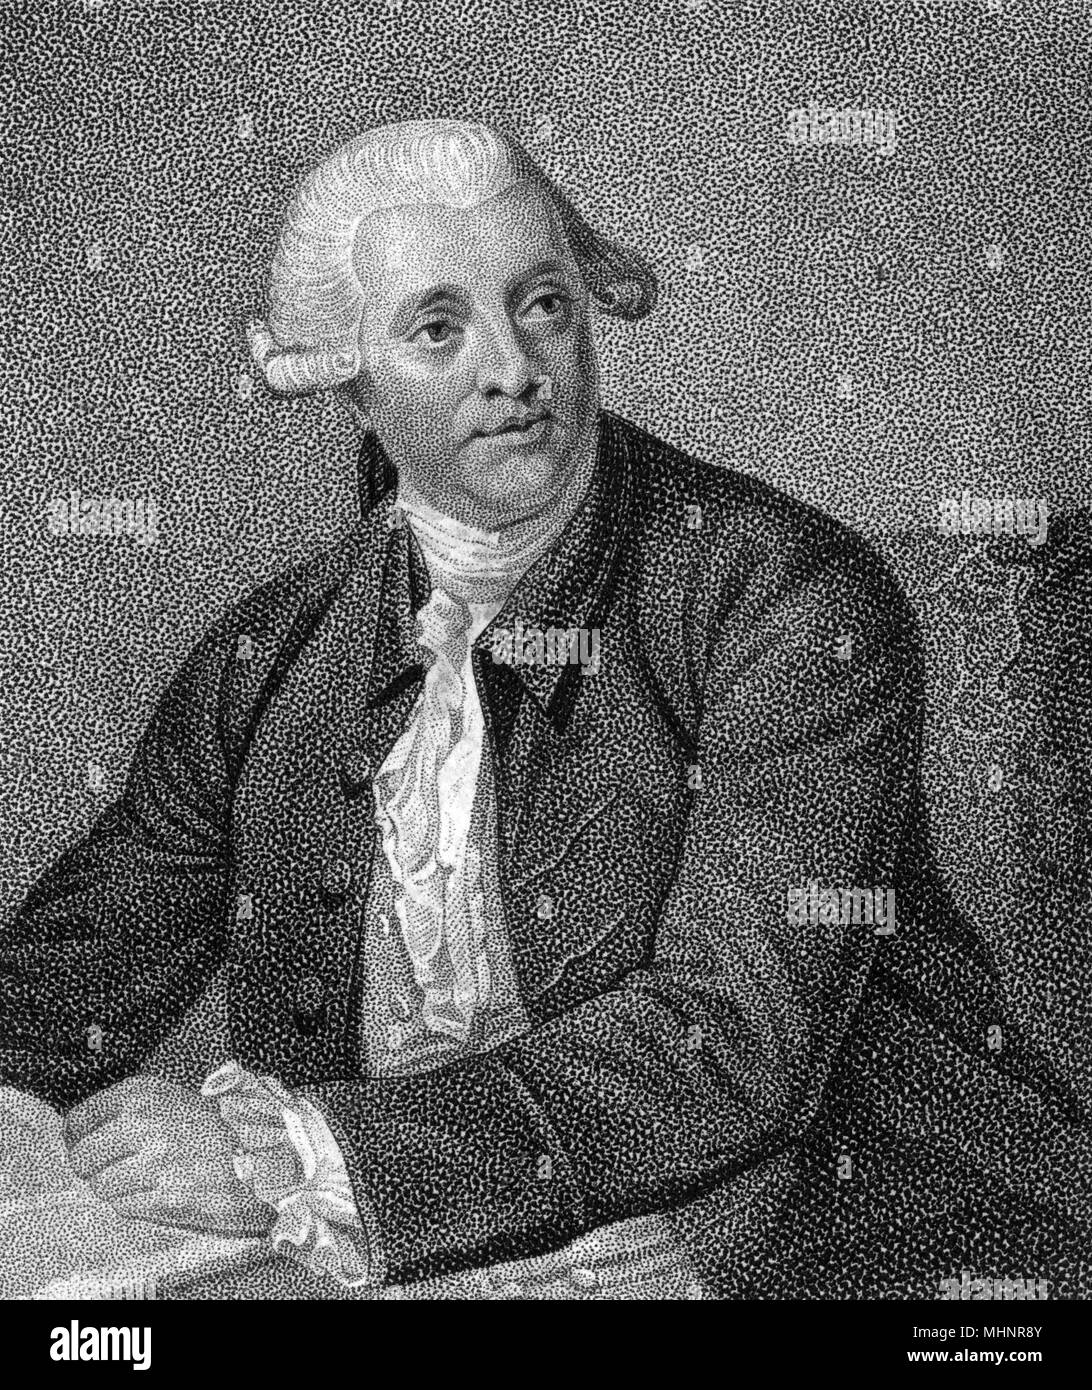 Arthur Murphy (1727-1805) - Author and Playwright     Date: circa 1790s - Stock Image